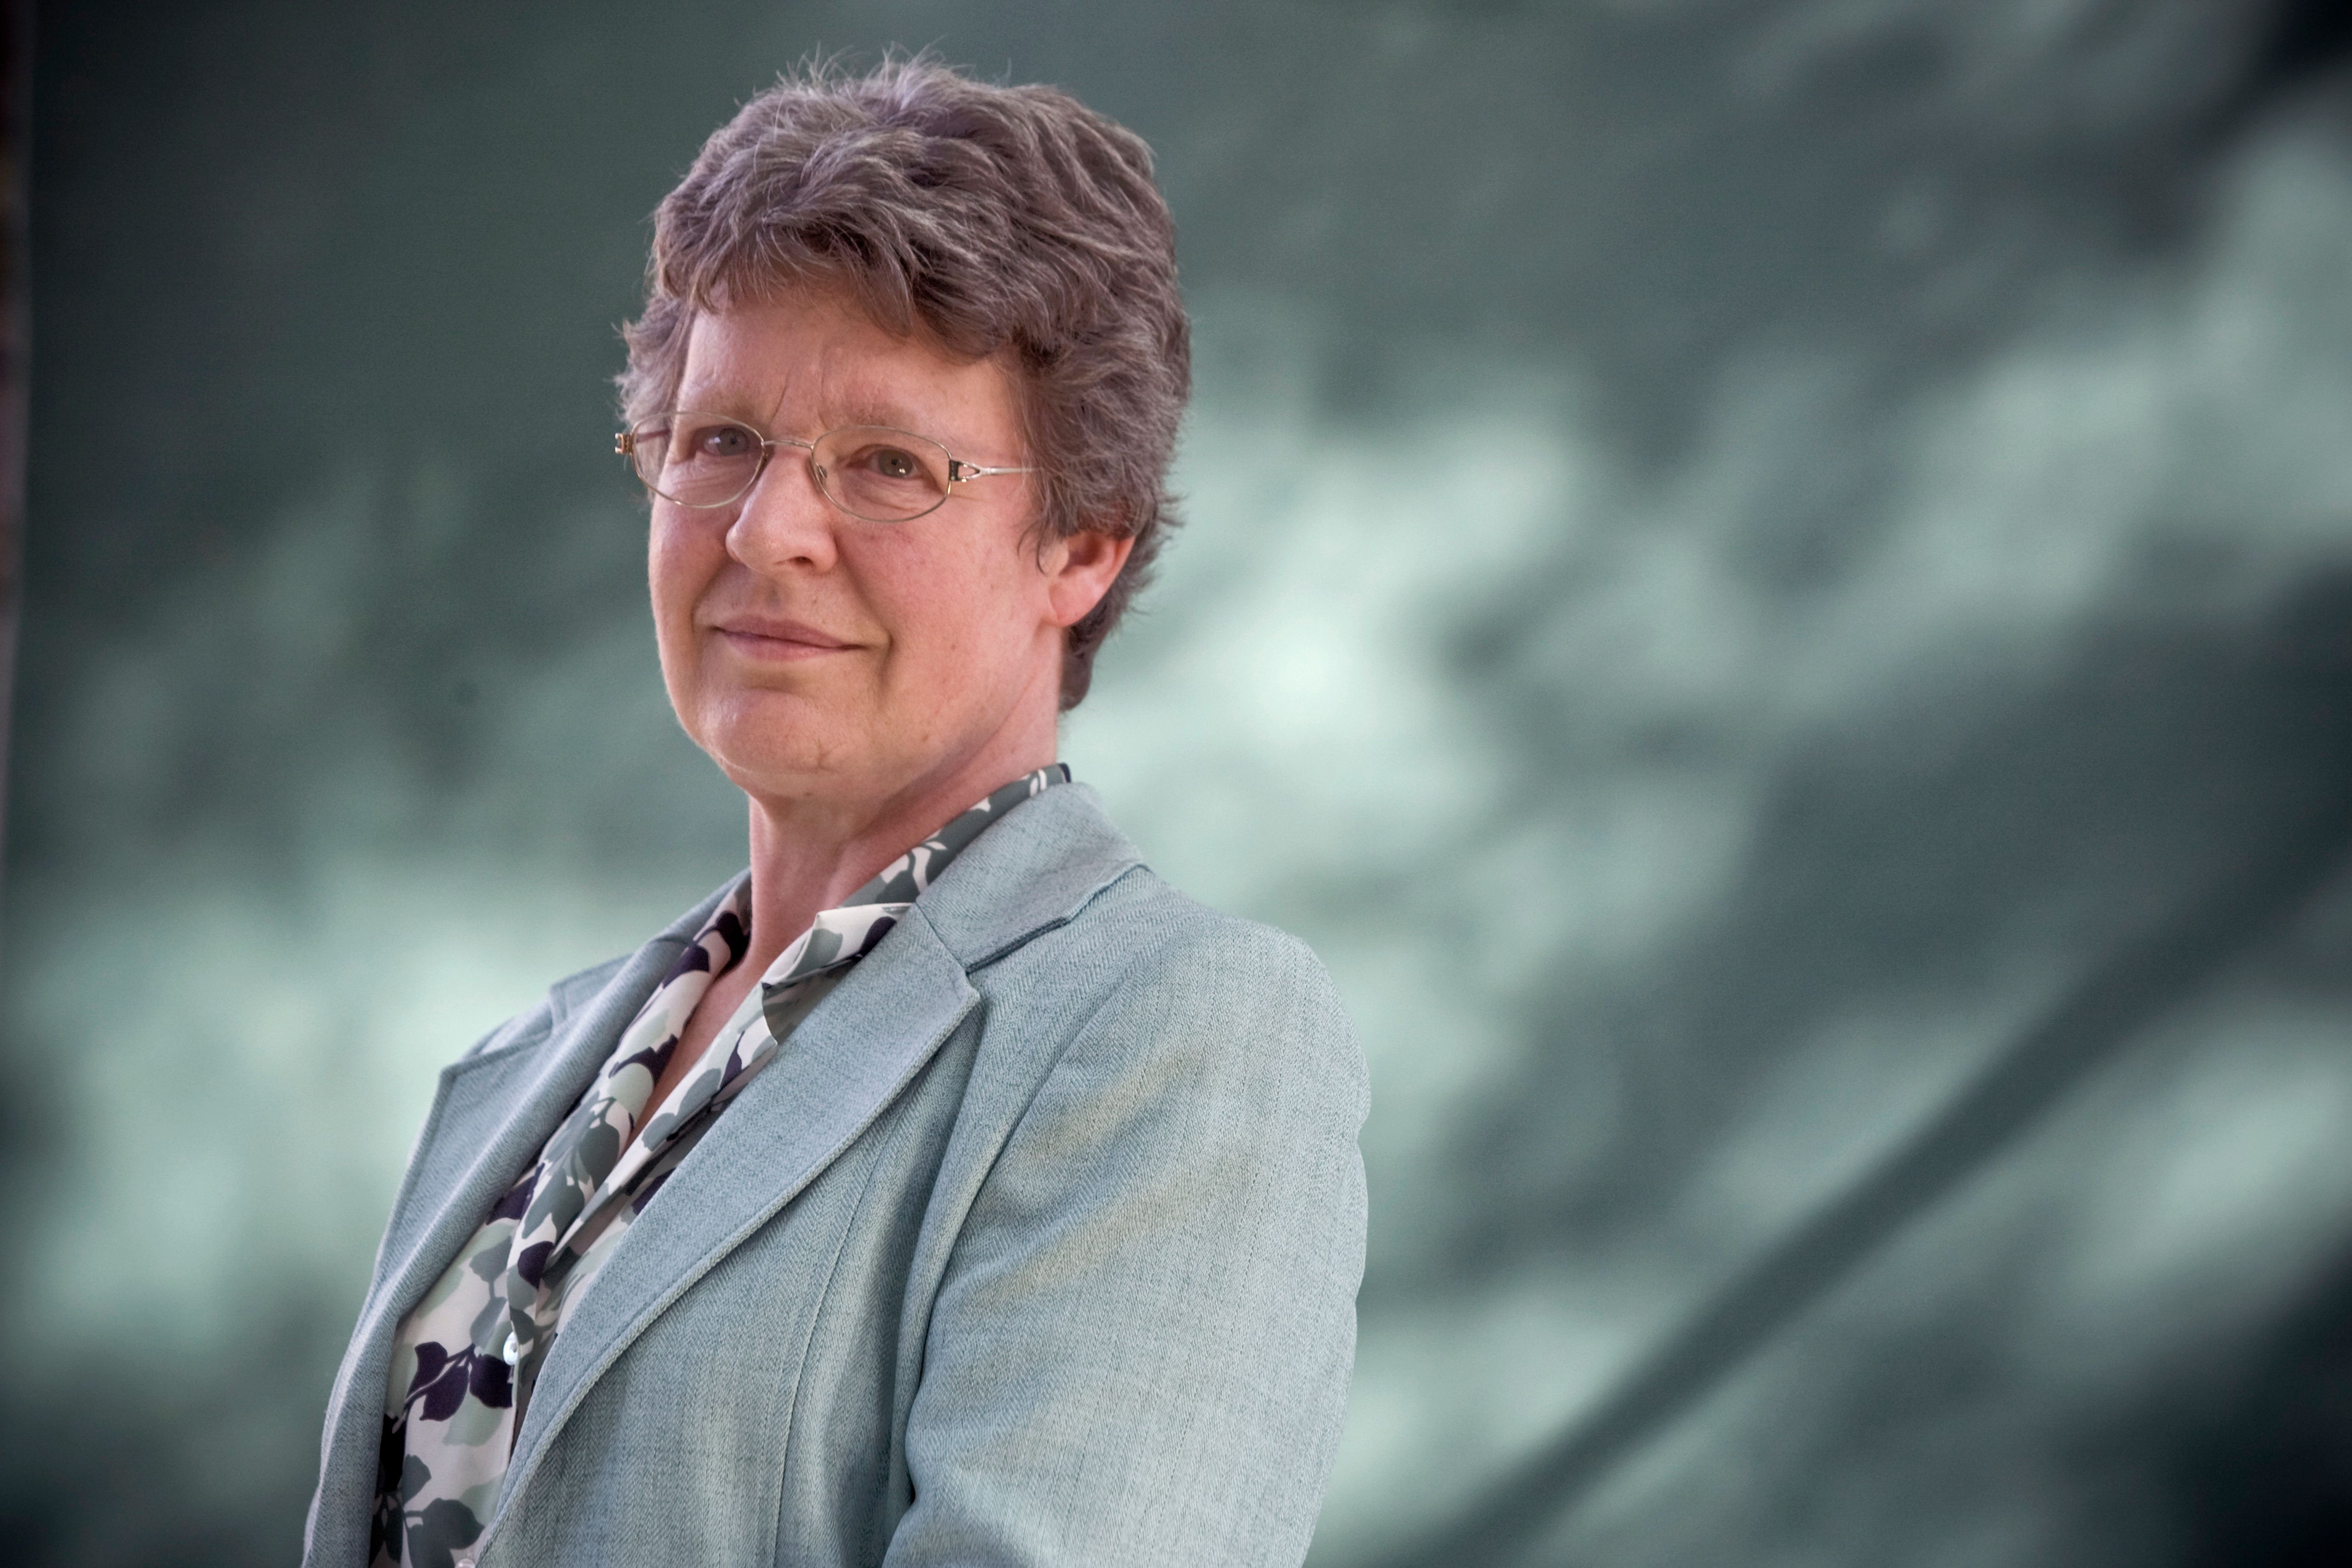 Jocelyn Bell Burnell is a visiting professor at the University of Oxford.